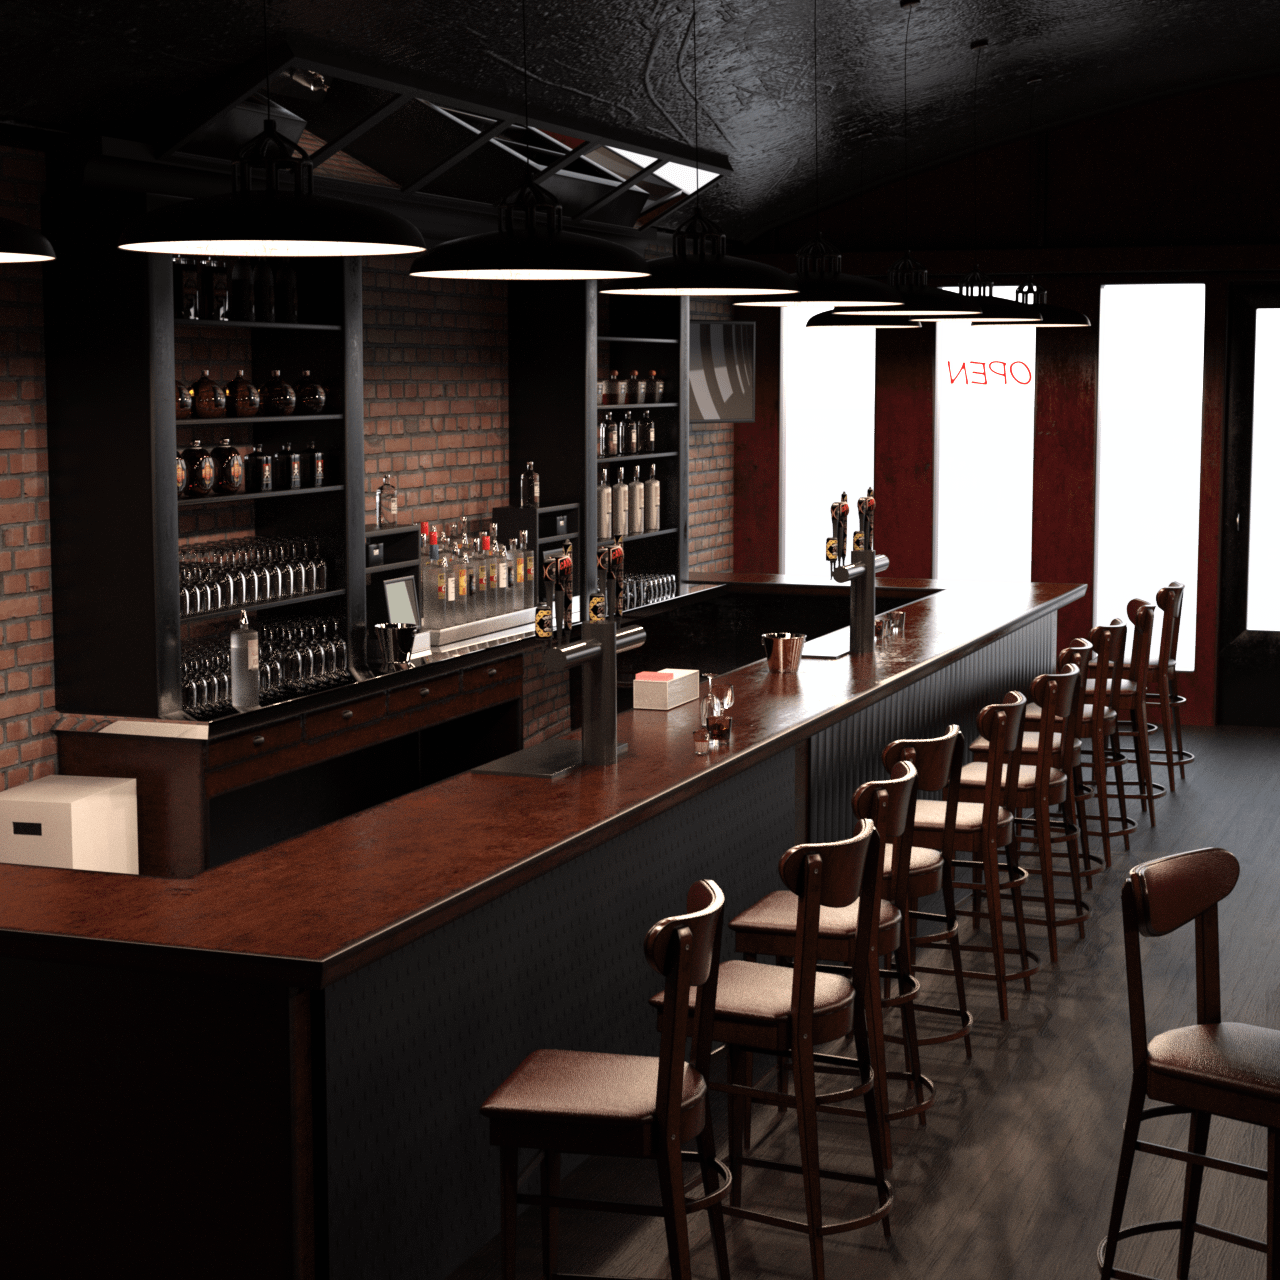 Another view on the bar showing a row of chairs at the counter